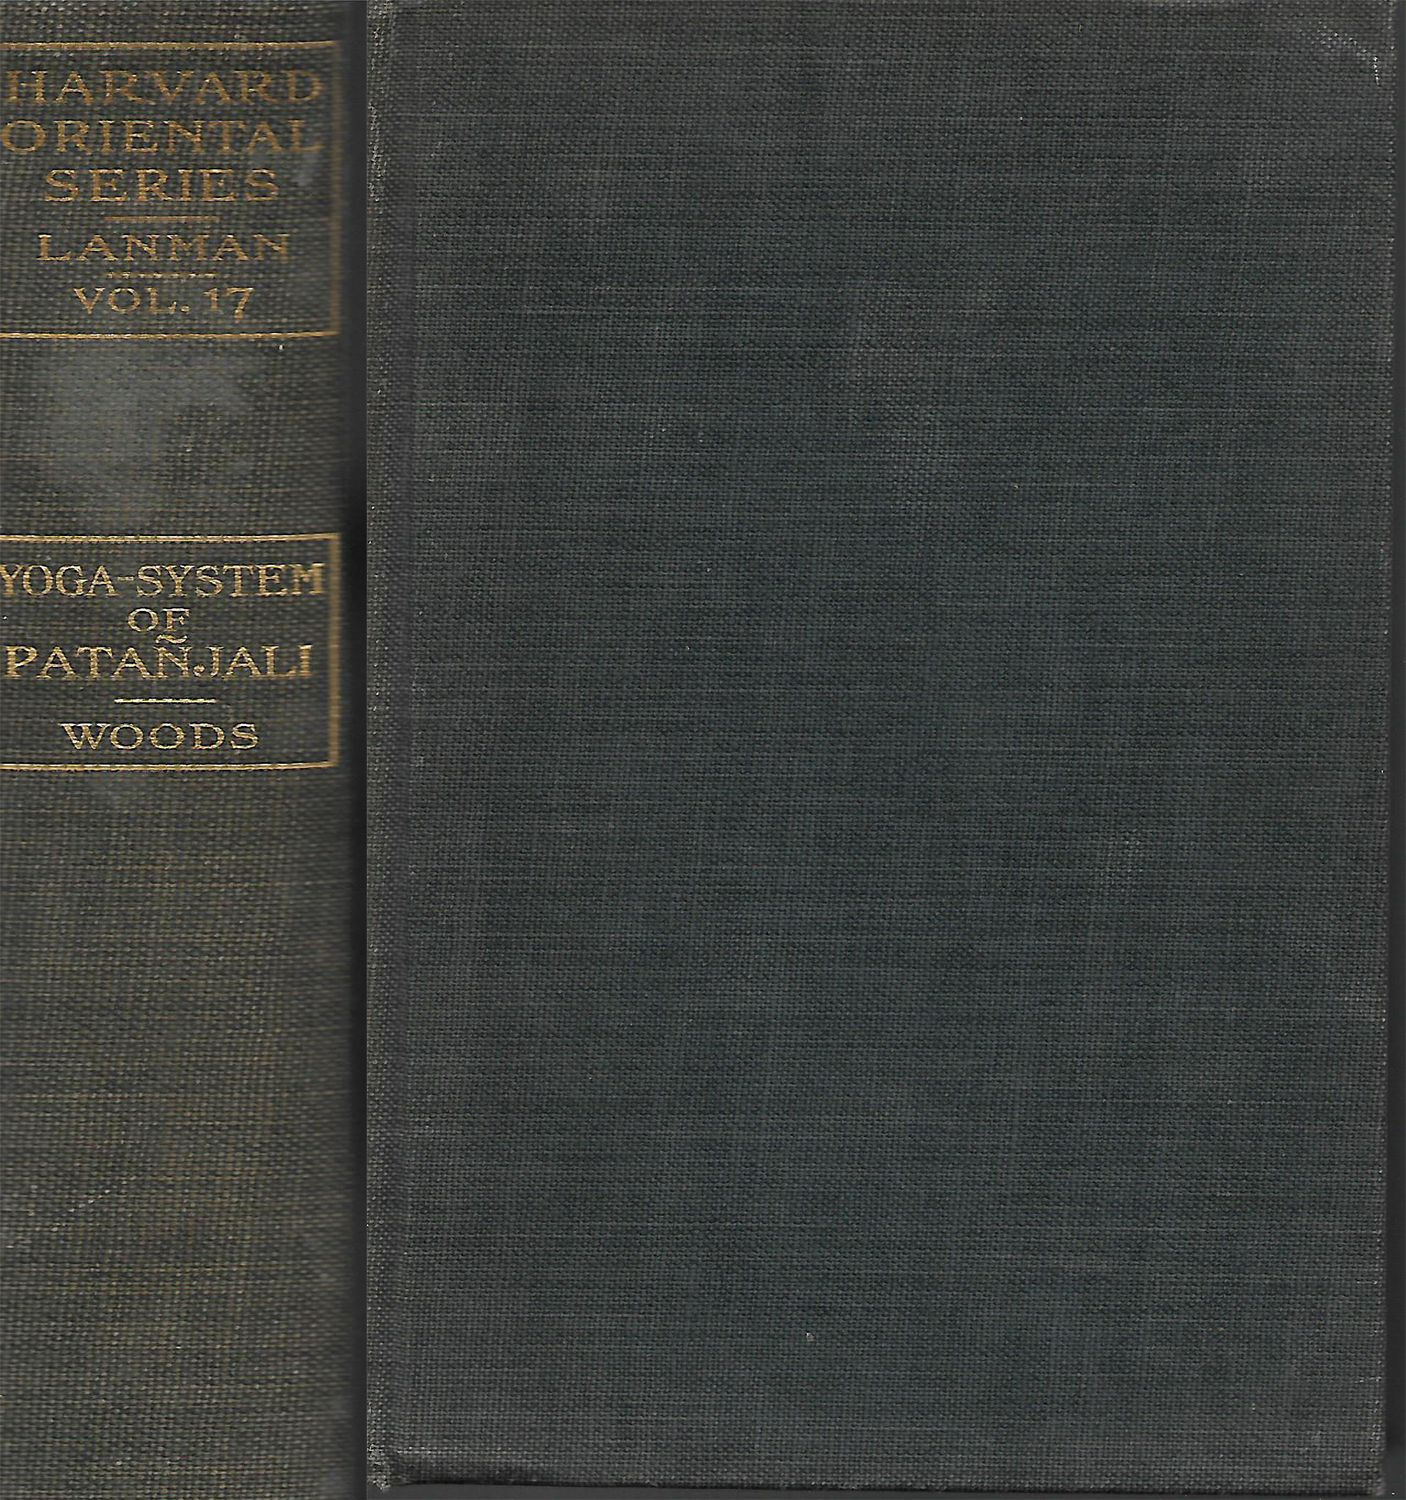 The Yoga-System of Patanjali: Or the Ancient Hindu Doctrine of Concentration of Mind (Harvard Oriental Series, Vol. 17)